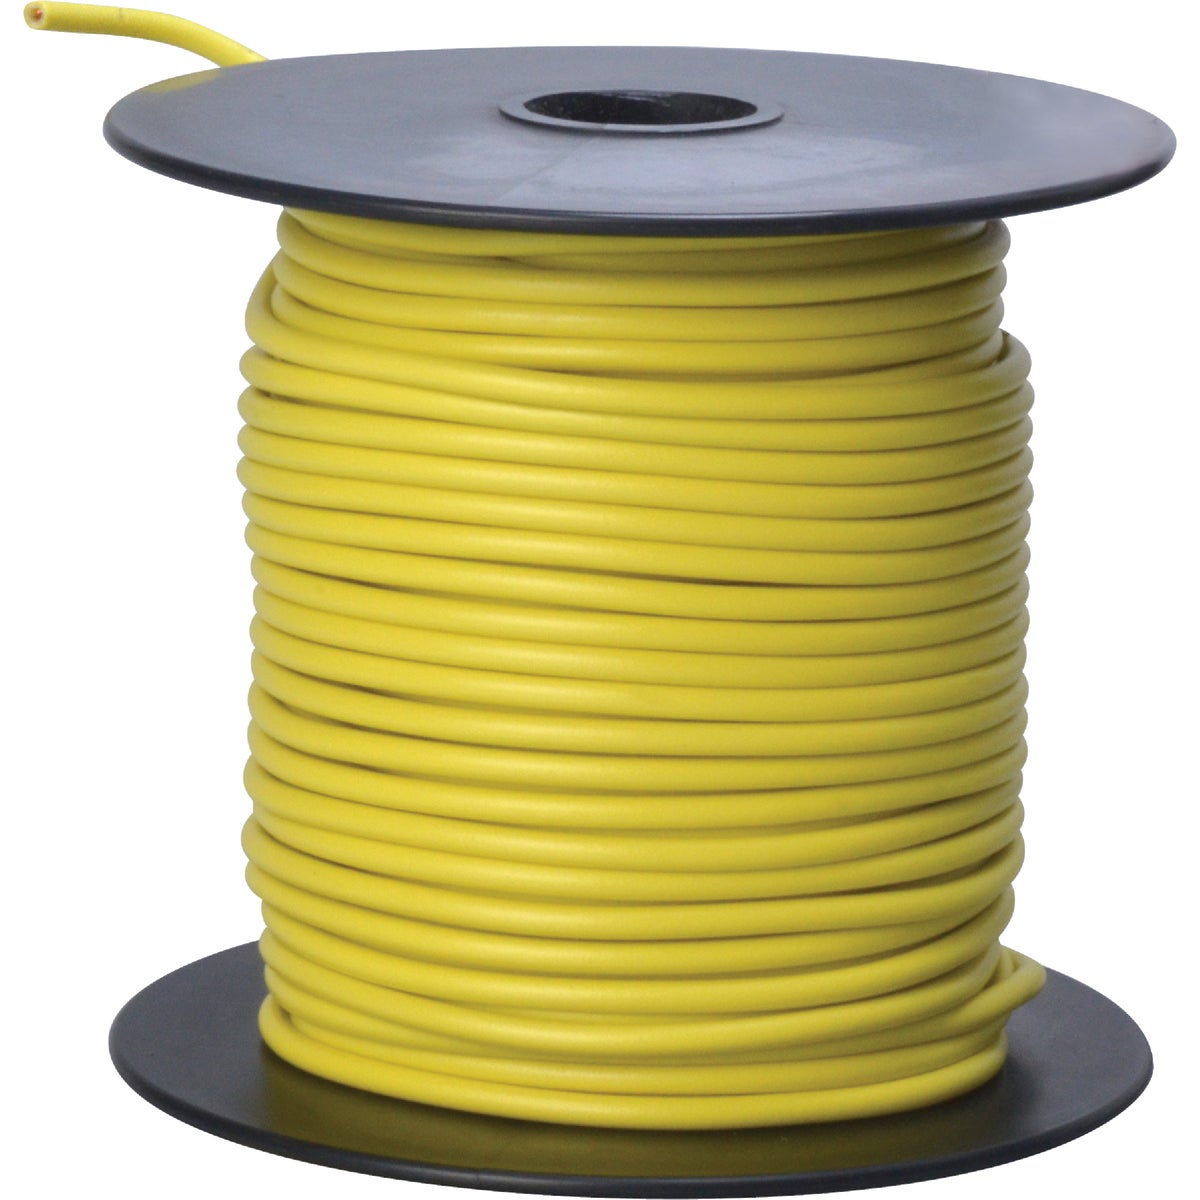 100' 16GA YEL AUTO WIRE - 16-100-14 by Woods Wire Coleman